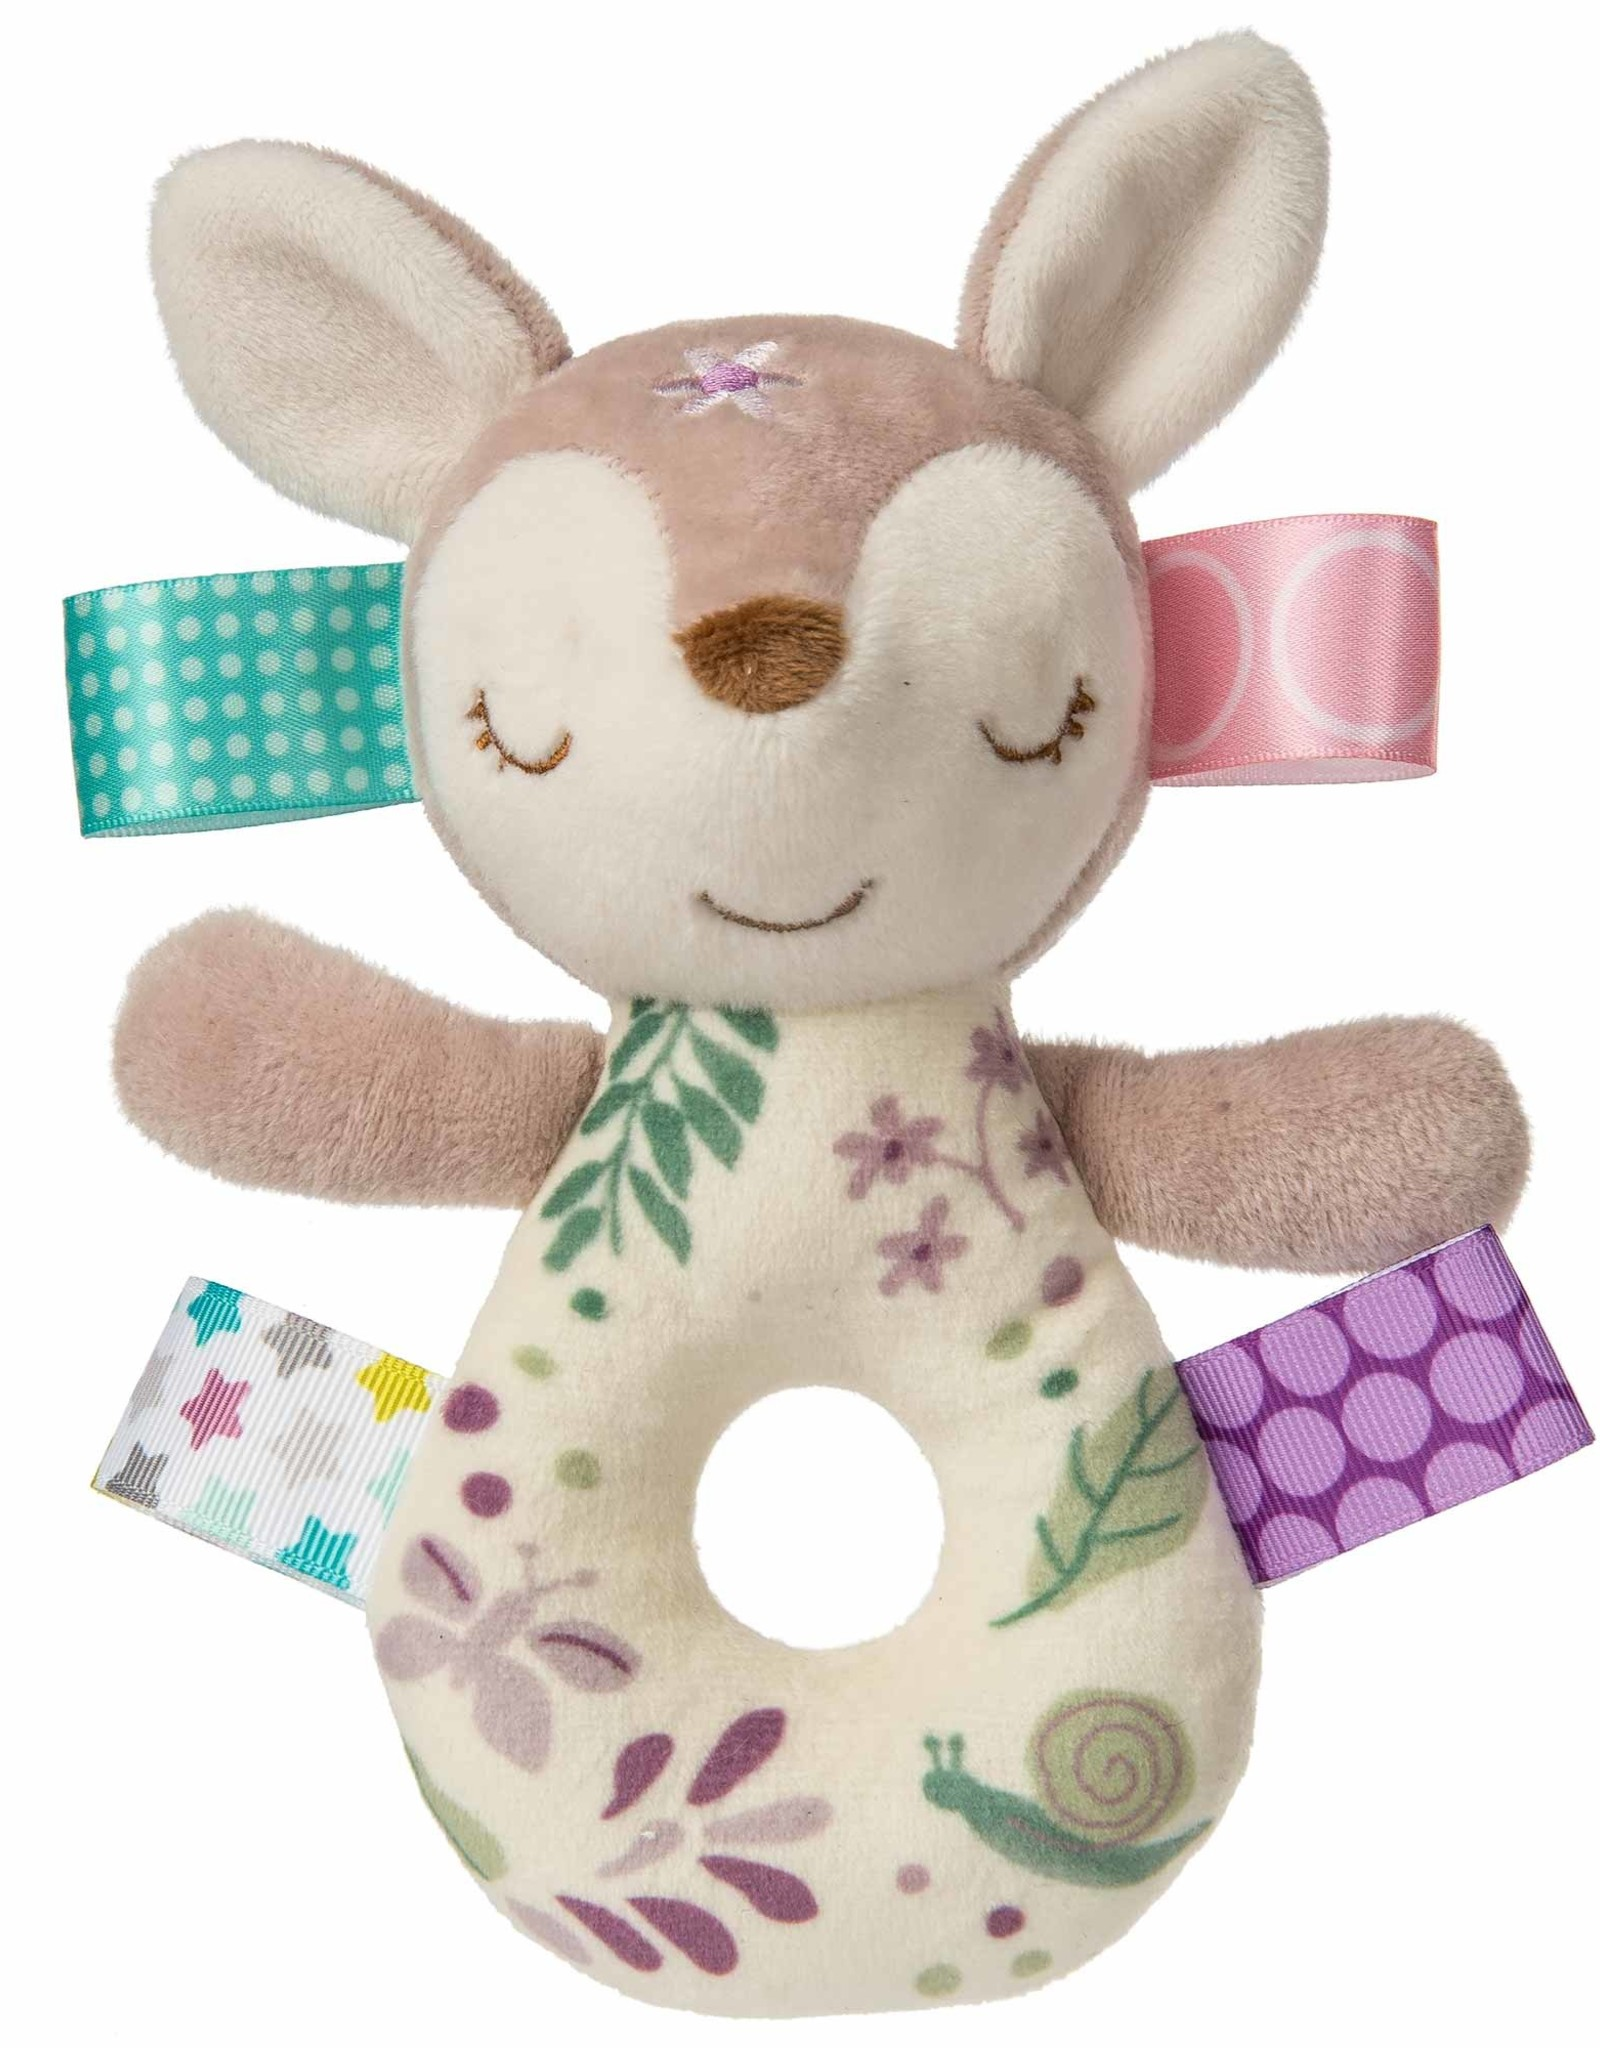 Mary Meyer Taggies Rattle - Flora Fawn - 6""